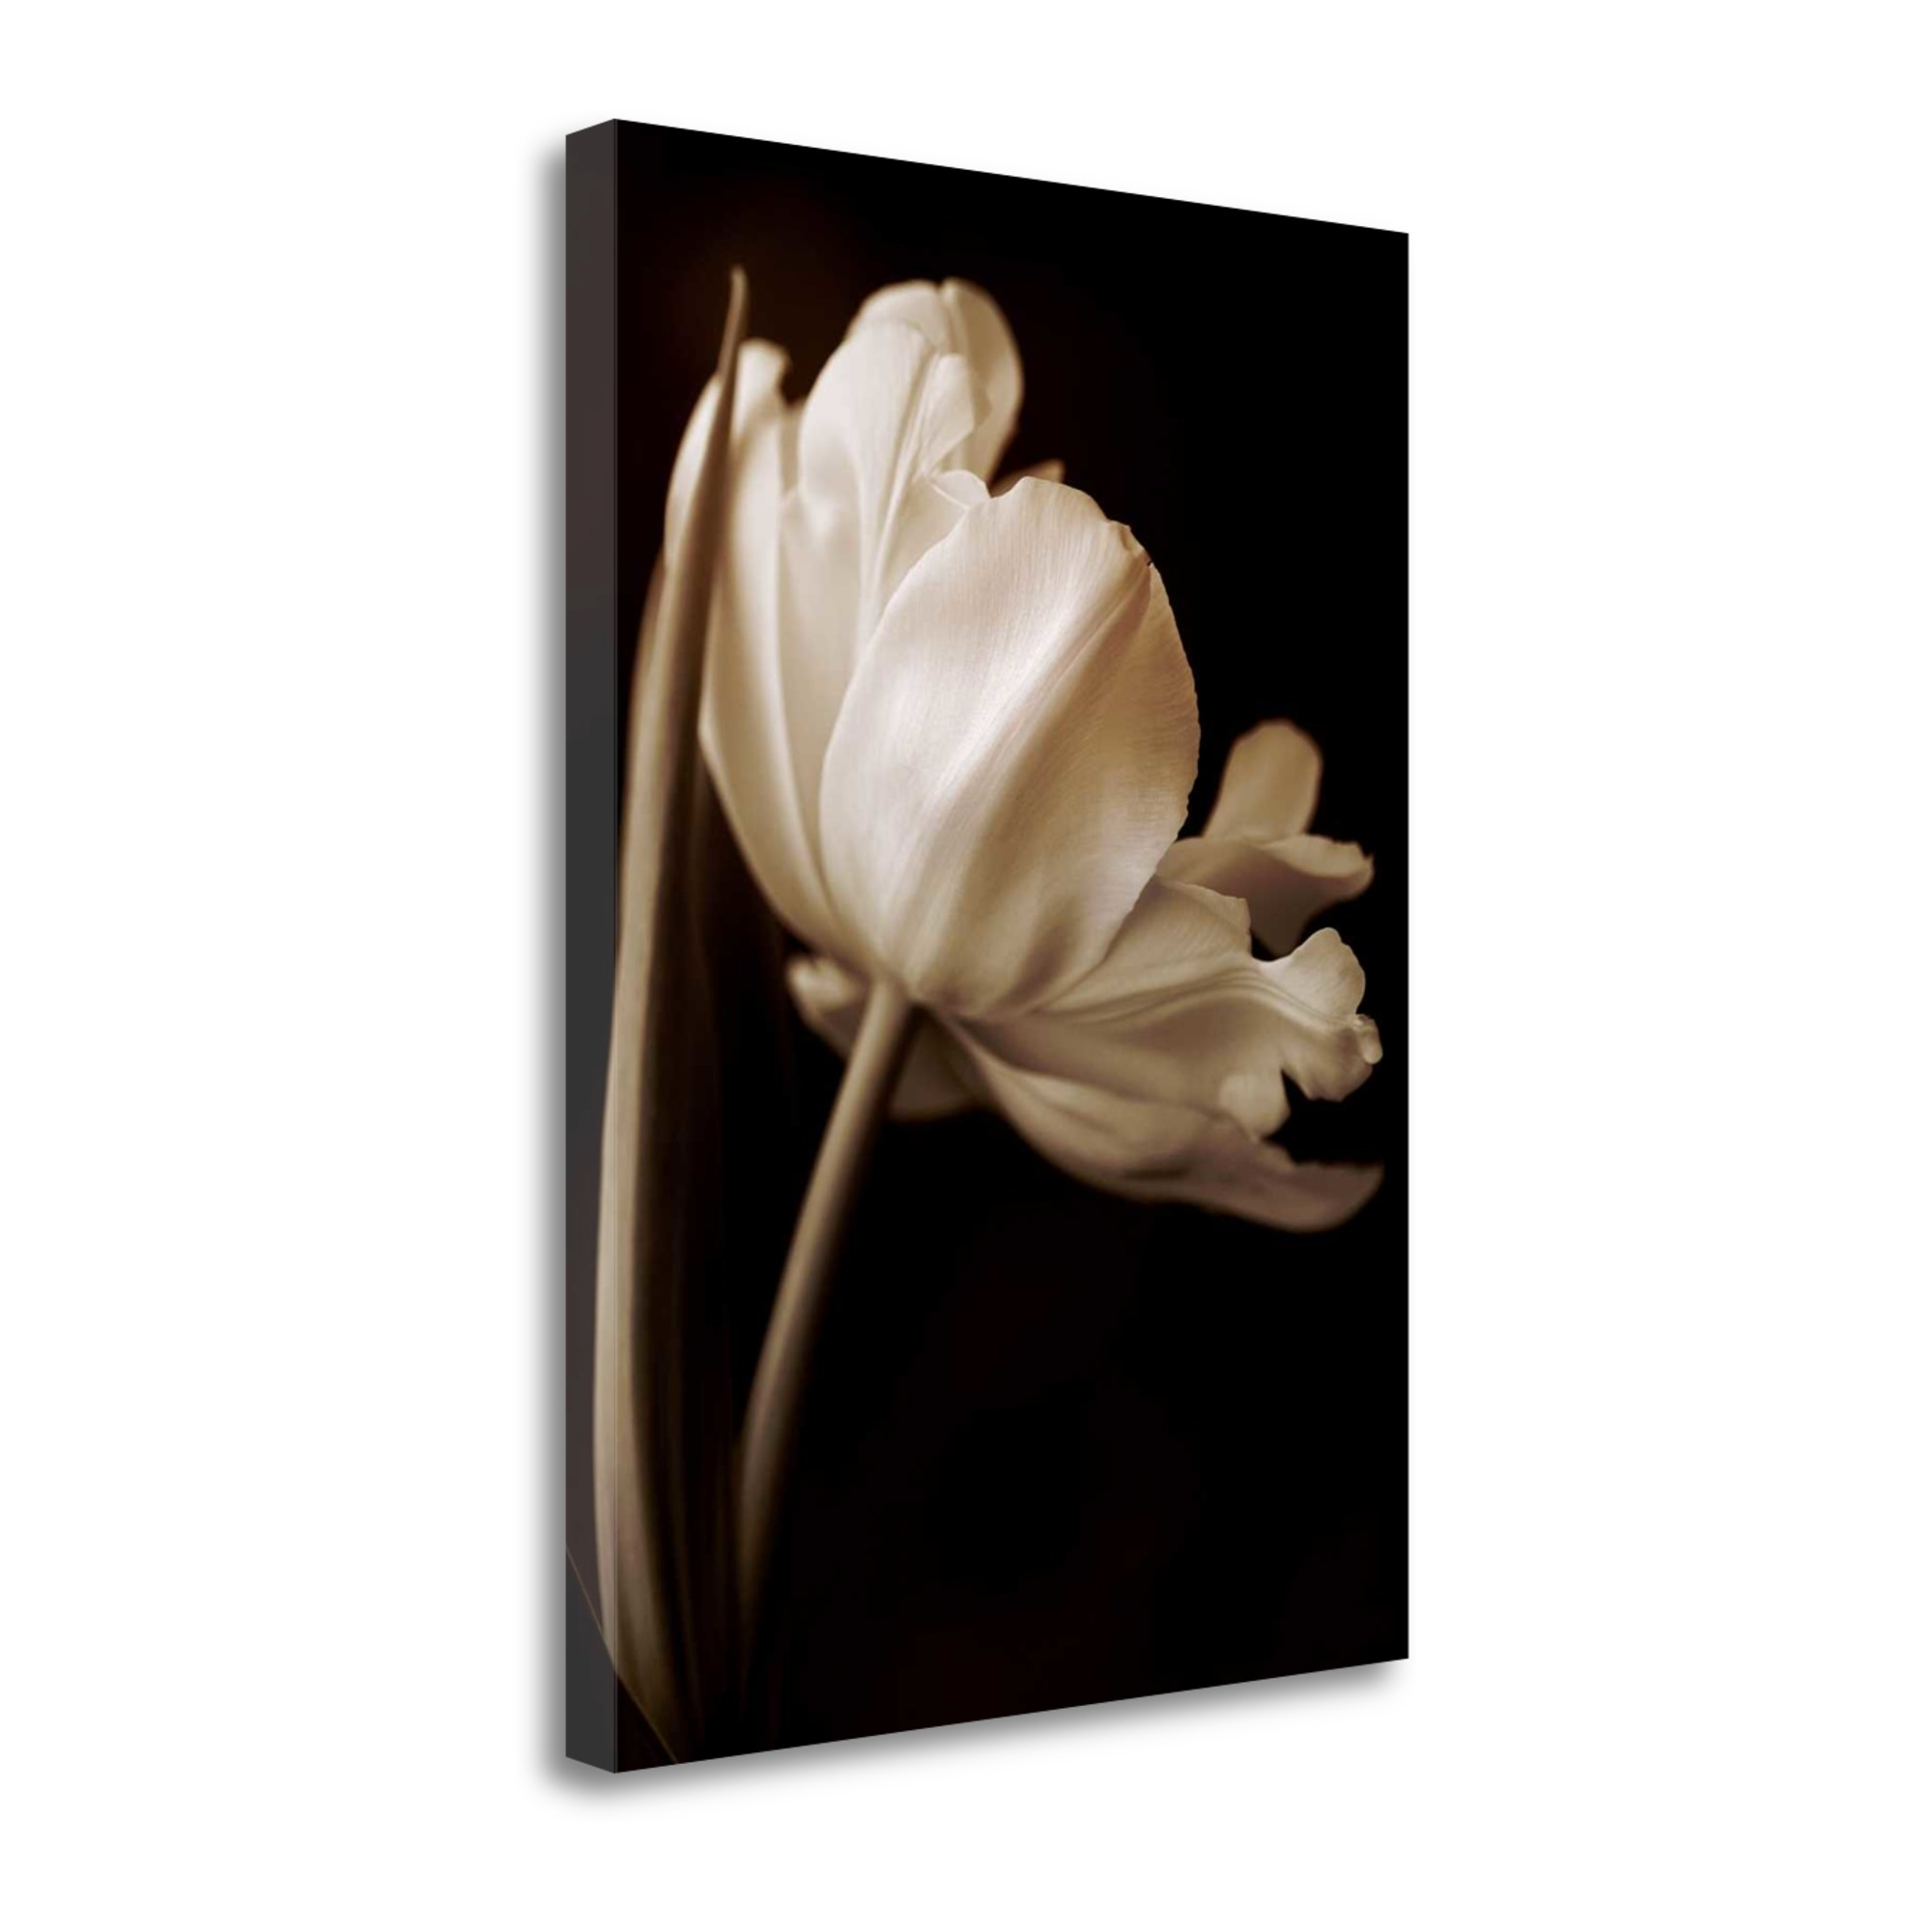 "Champagne Tulip I By Charles Britt, 18"" x 24\"" Fine Art Giclee Print on Gallery Wrap Canvas, Ready to Hang"